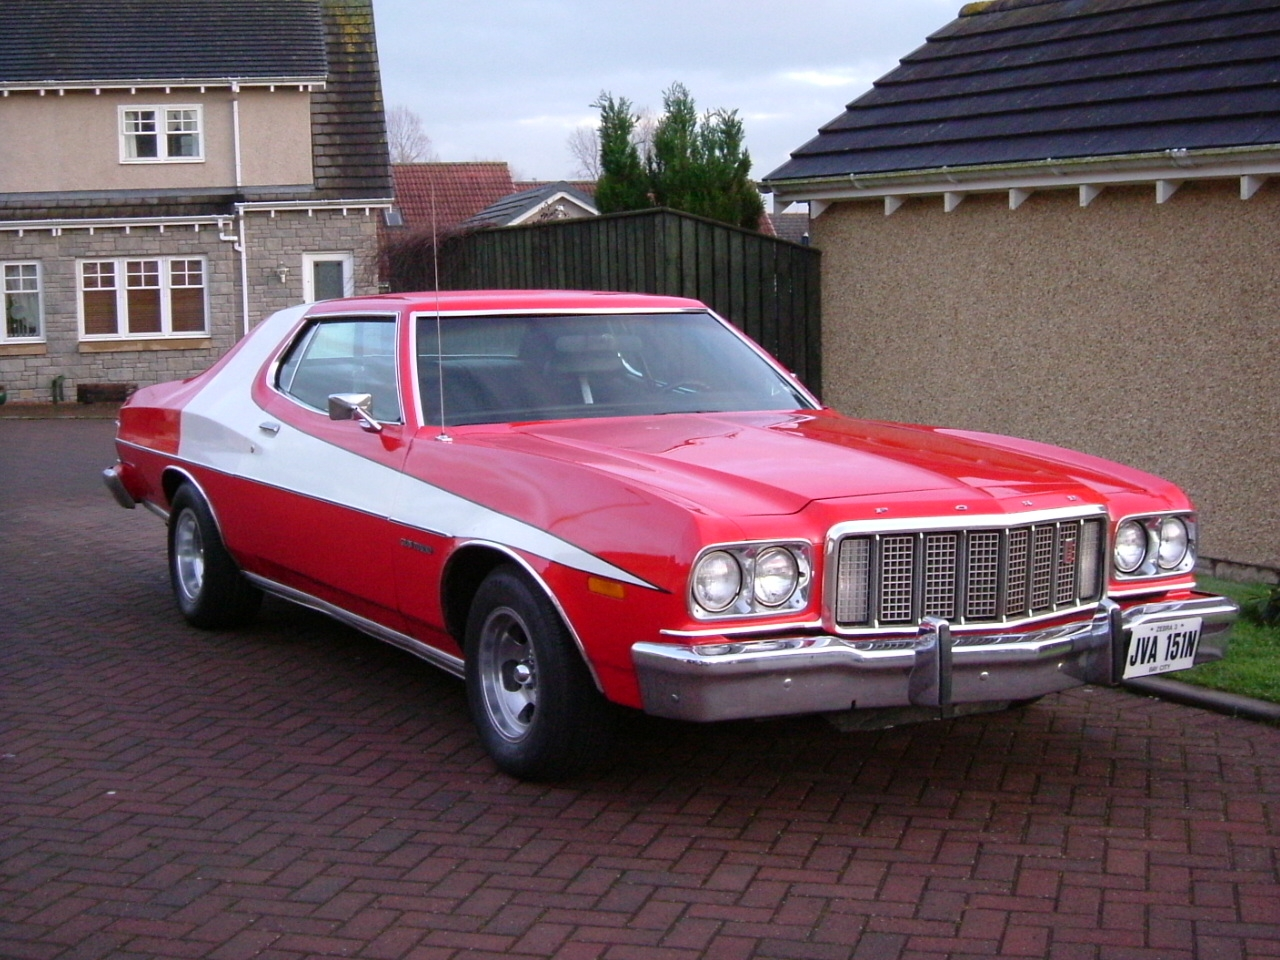 ray1967 39 s 1974 ford gran torino in dundee. Black Bedroom Furniture Sets. Home Design Ideas